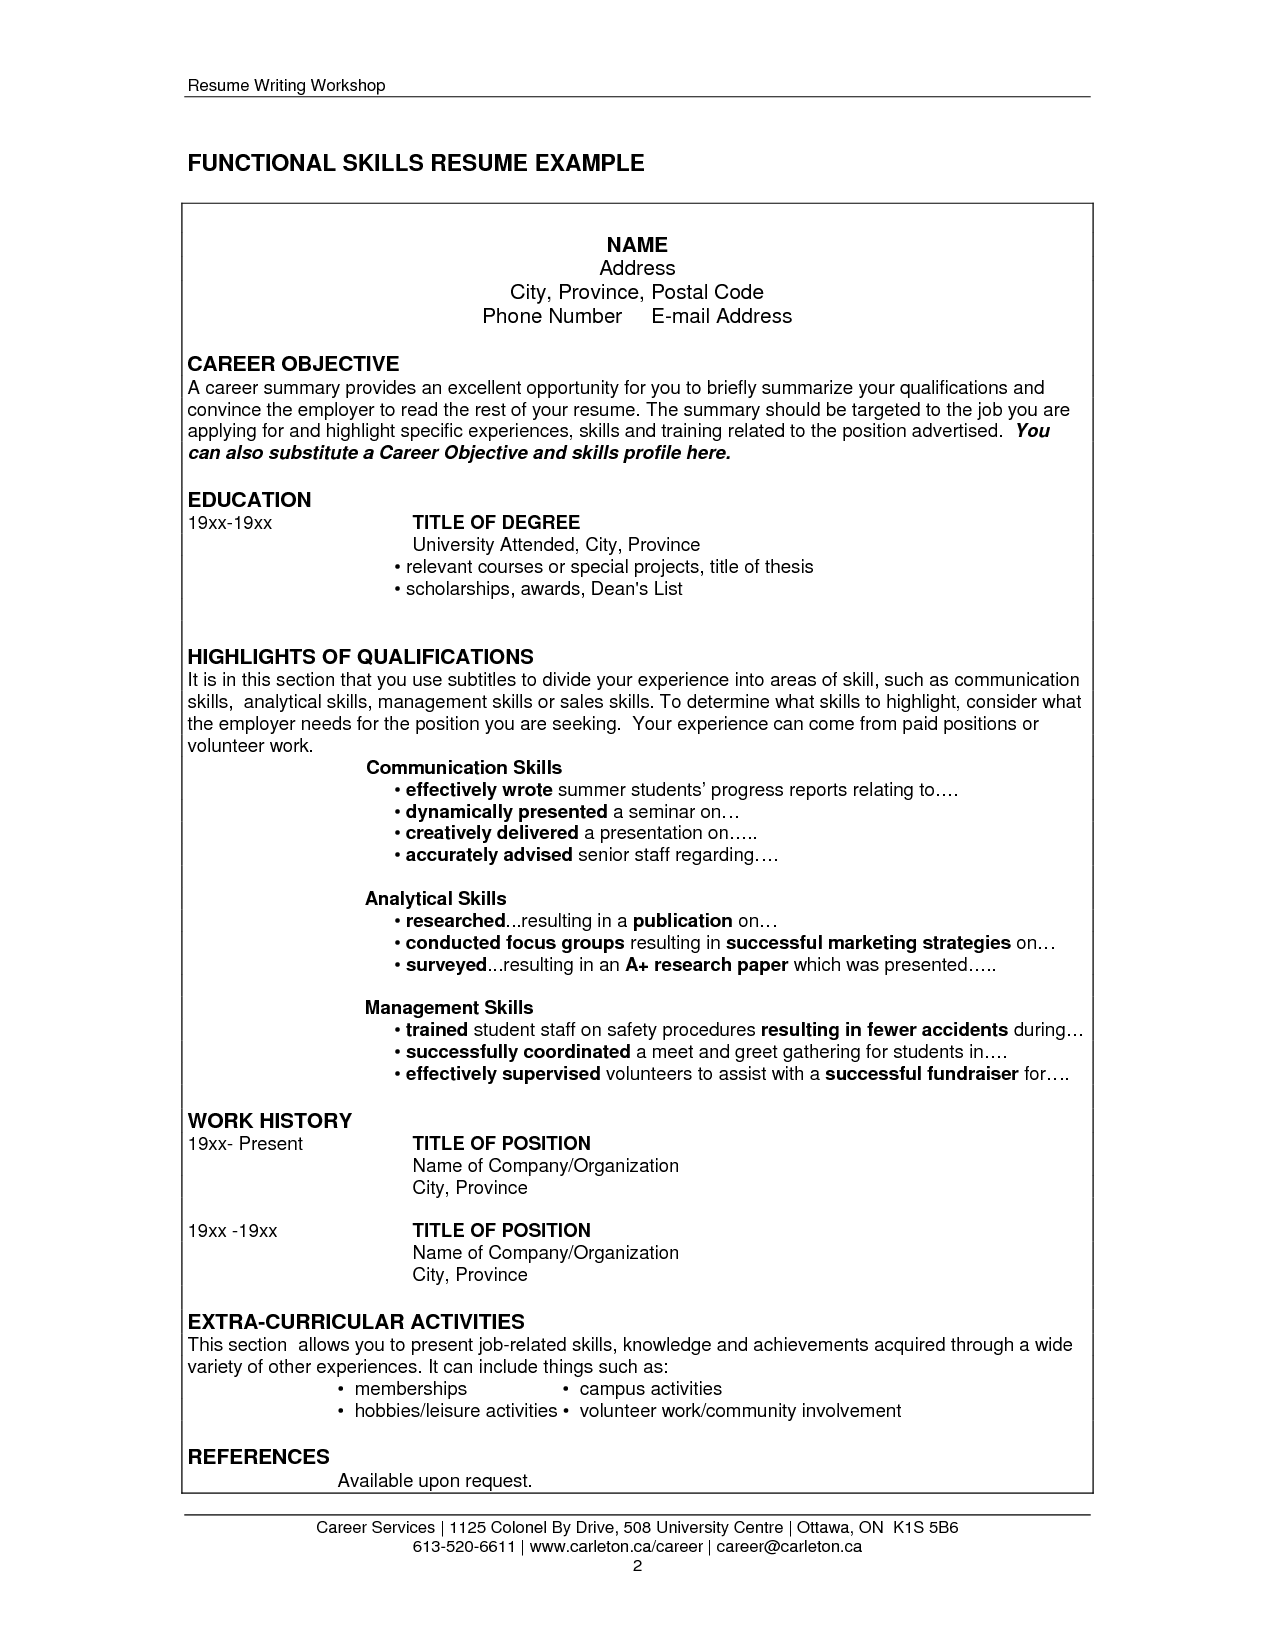 Skills Based Resume Template Image Result For Skills Resume Format  Business  Pinterest